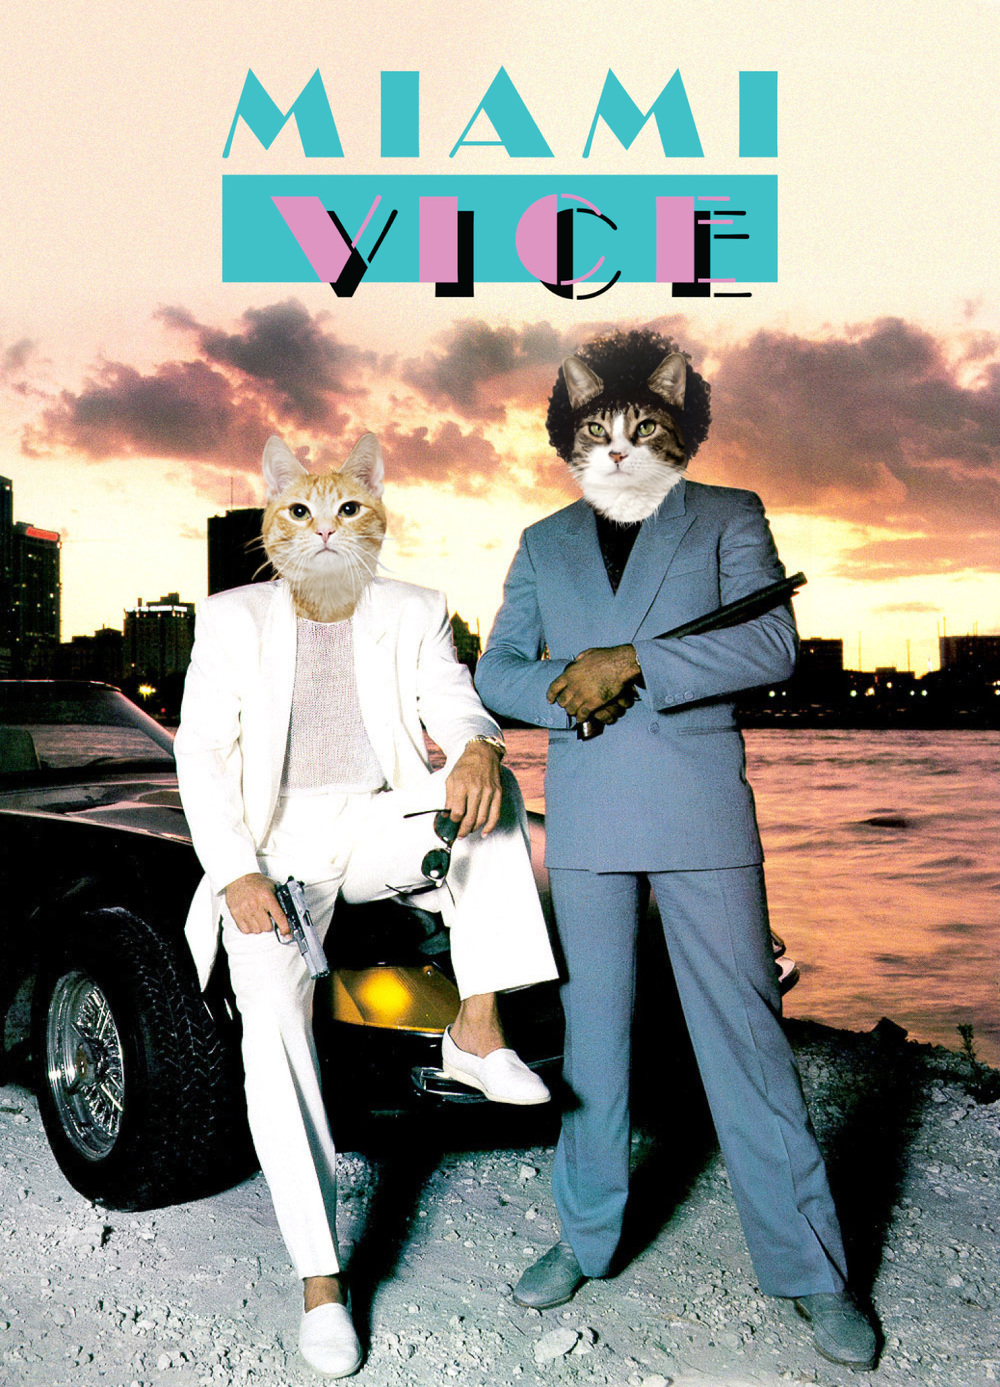 The-Artful-Union-Holiday-Cat-Miami-Vice.jpg